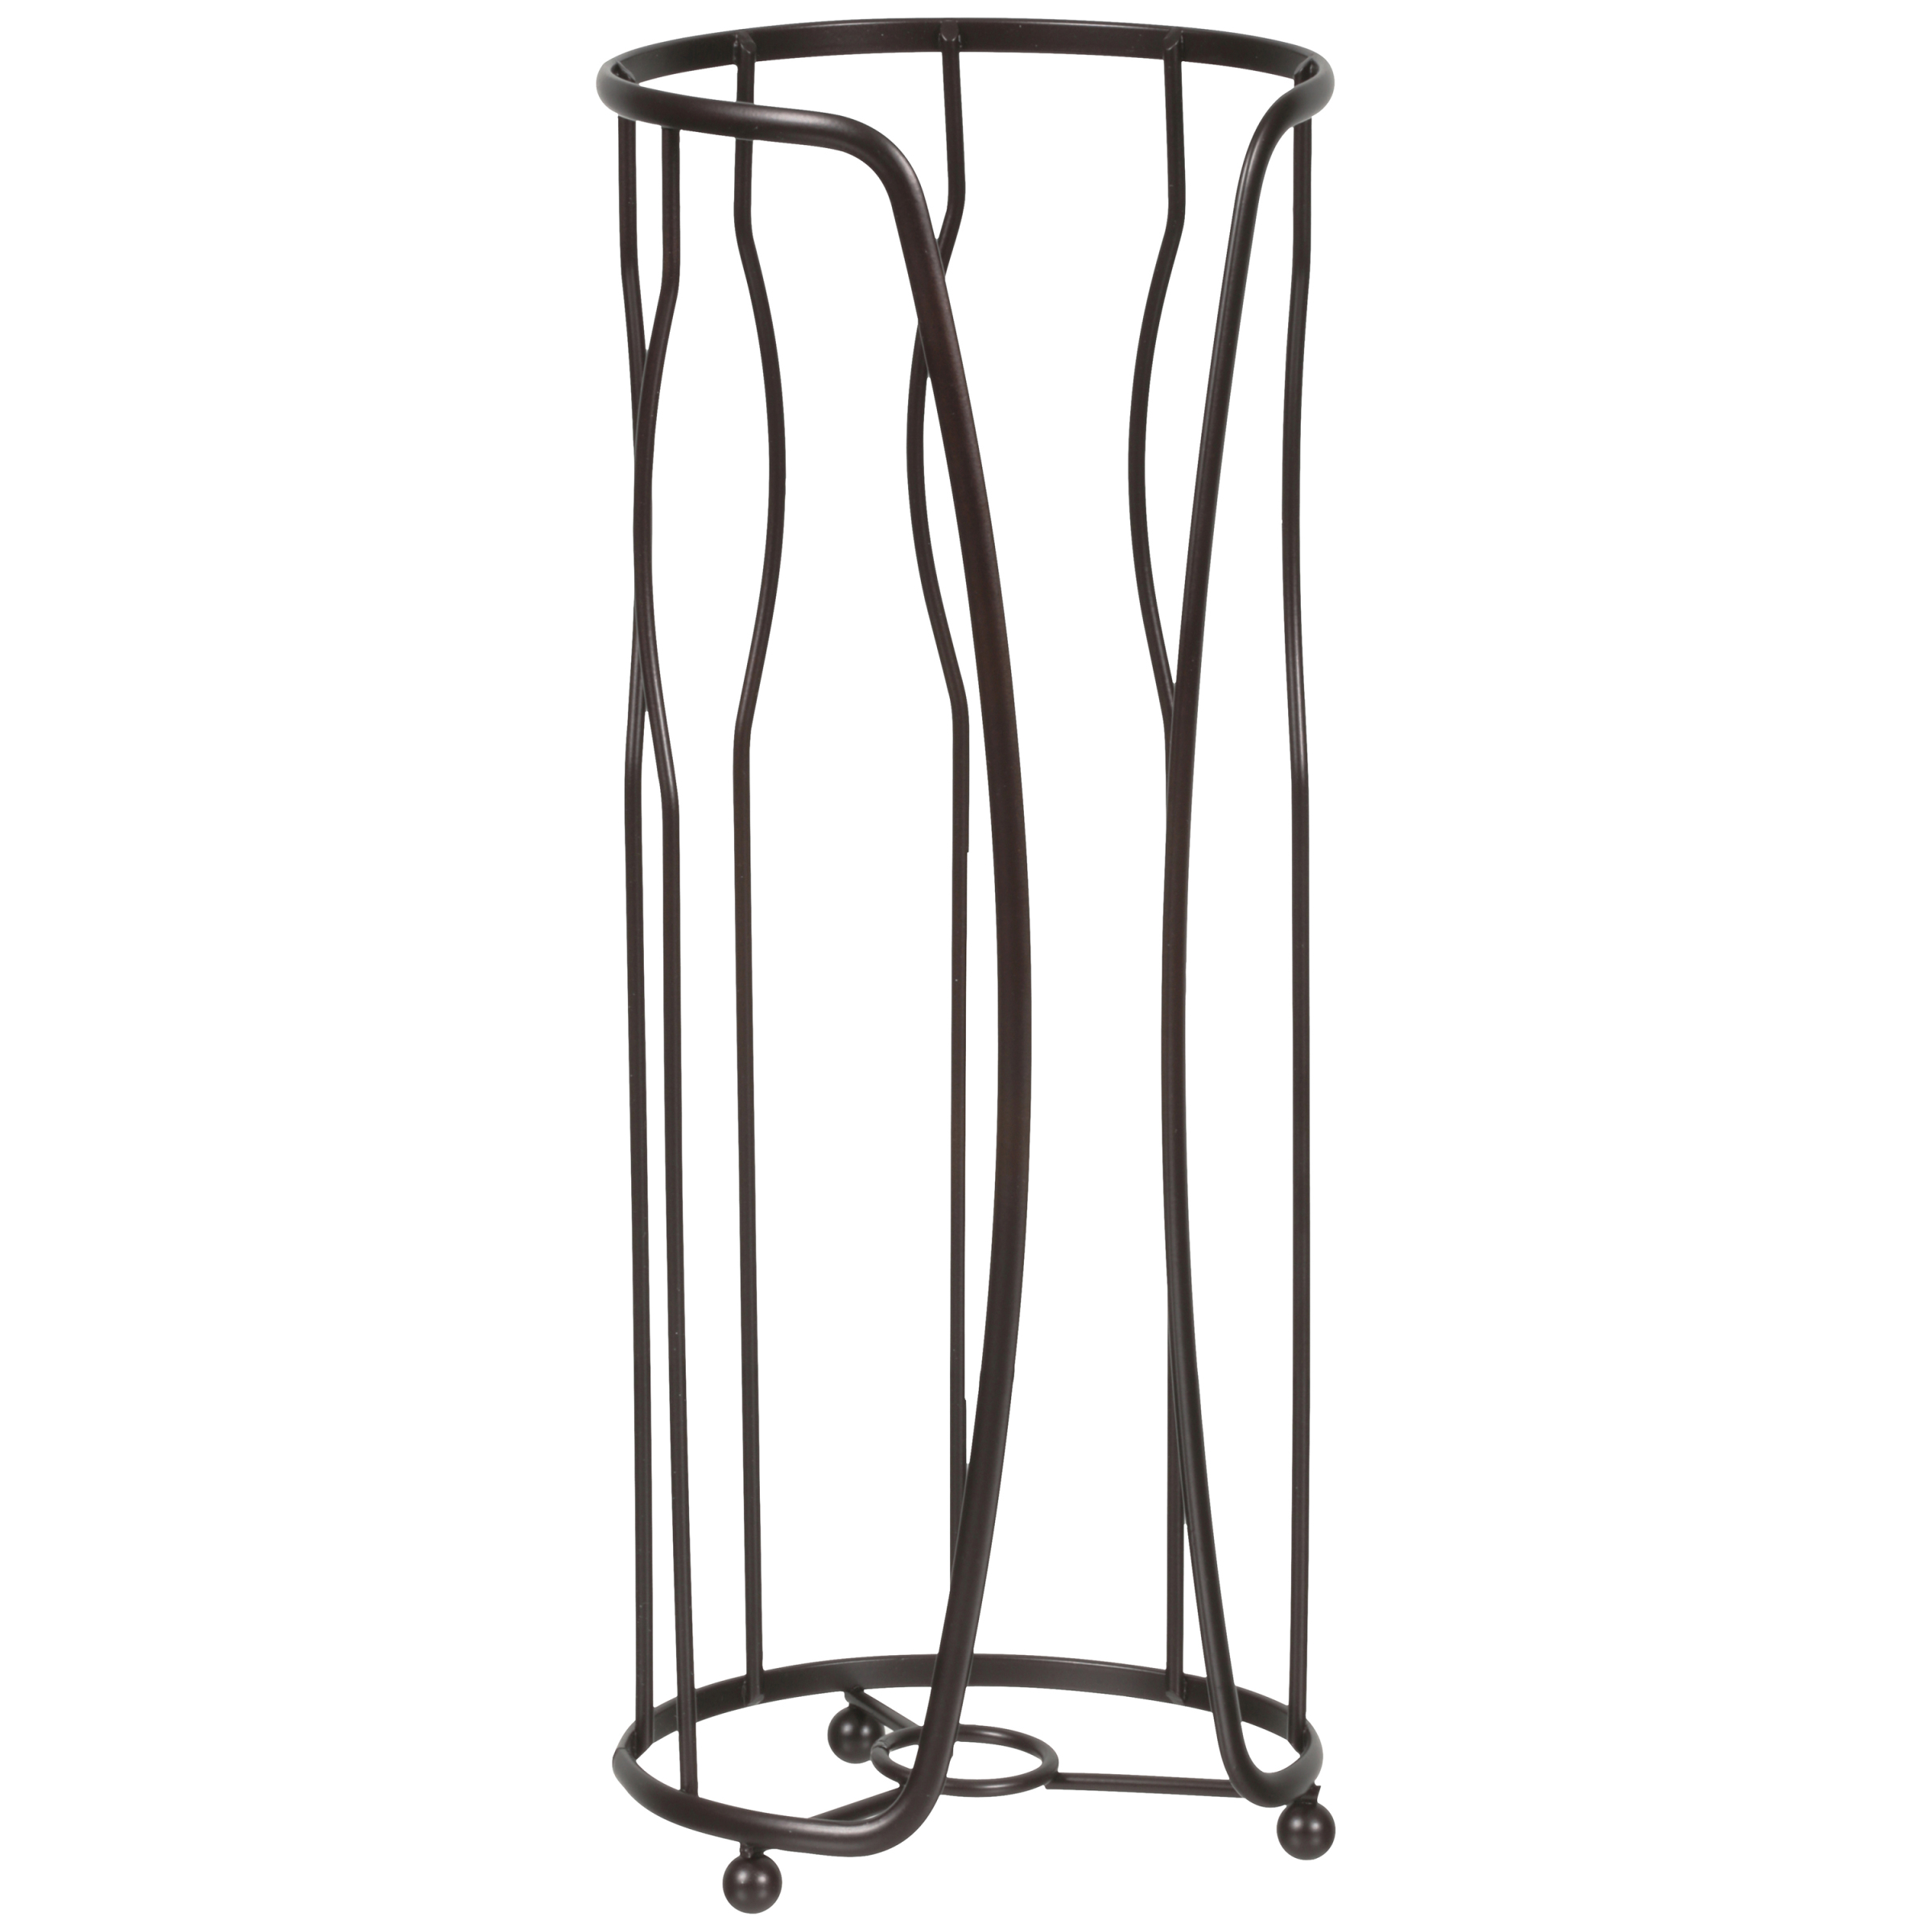 Chapter Toilet Paper Holder - Oil Rubbed Bronze